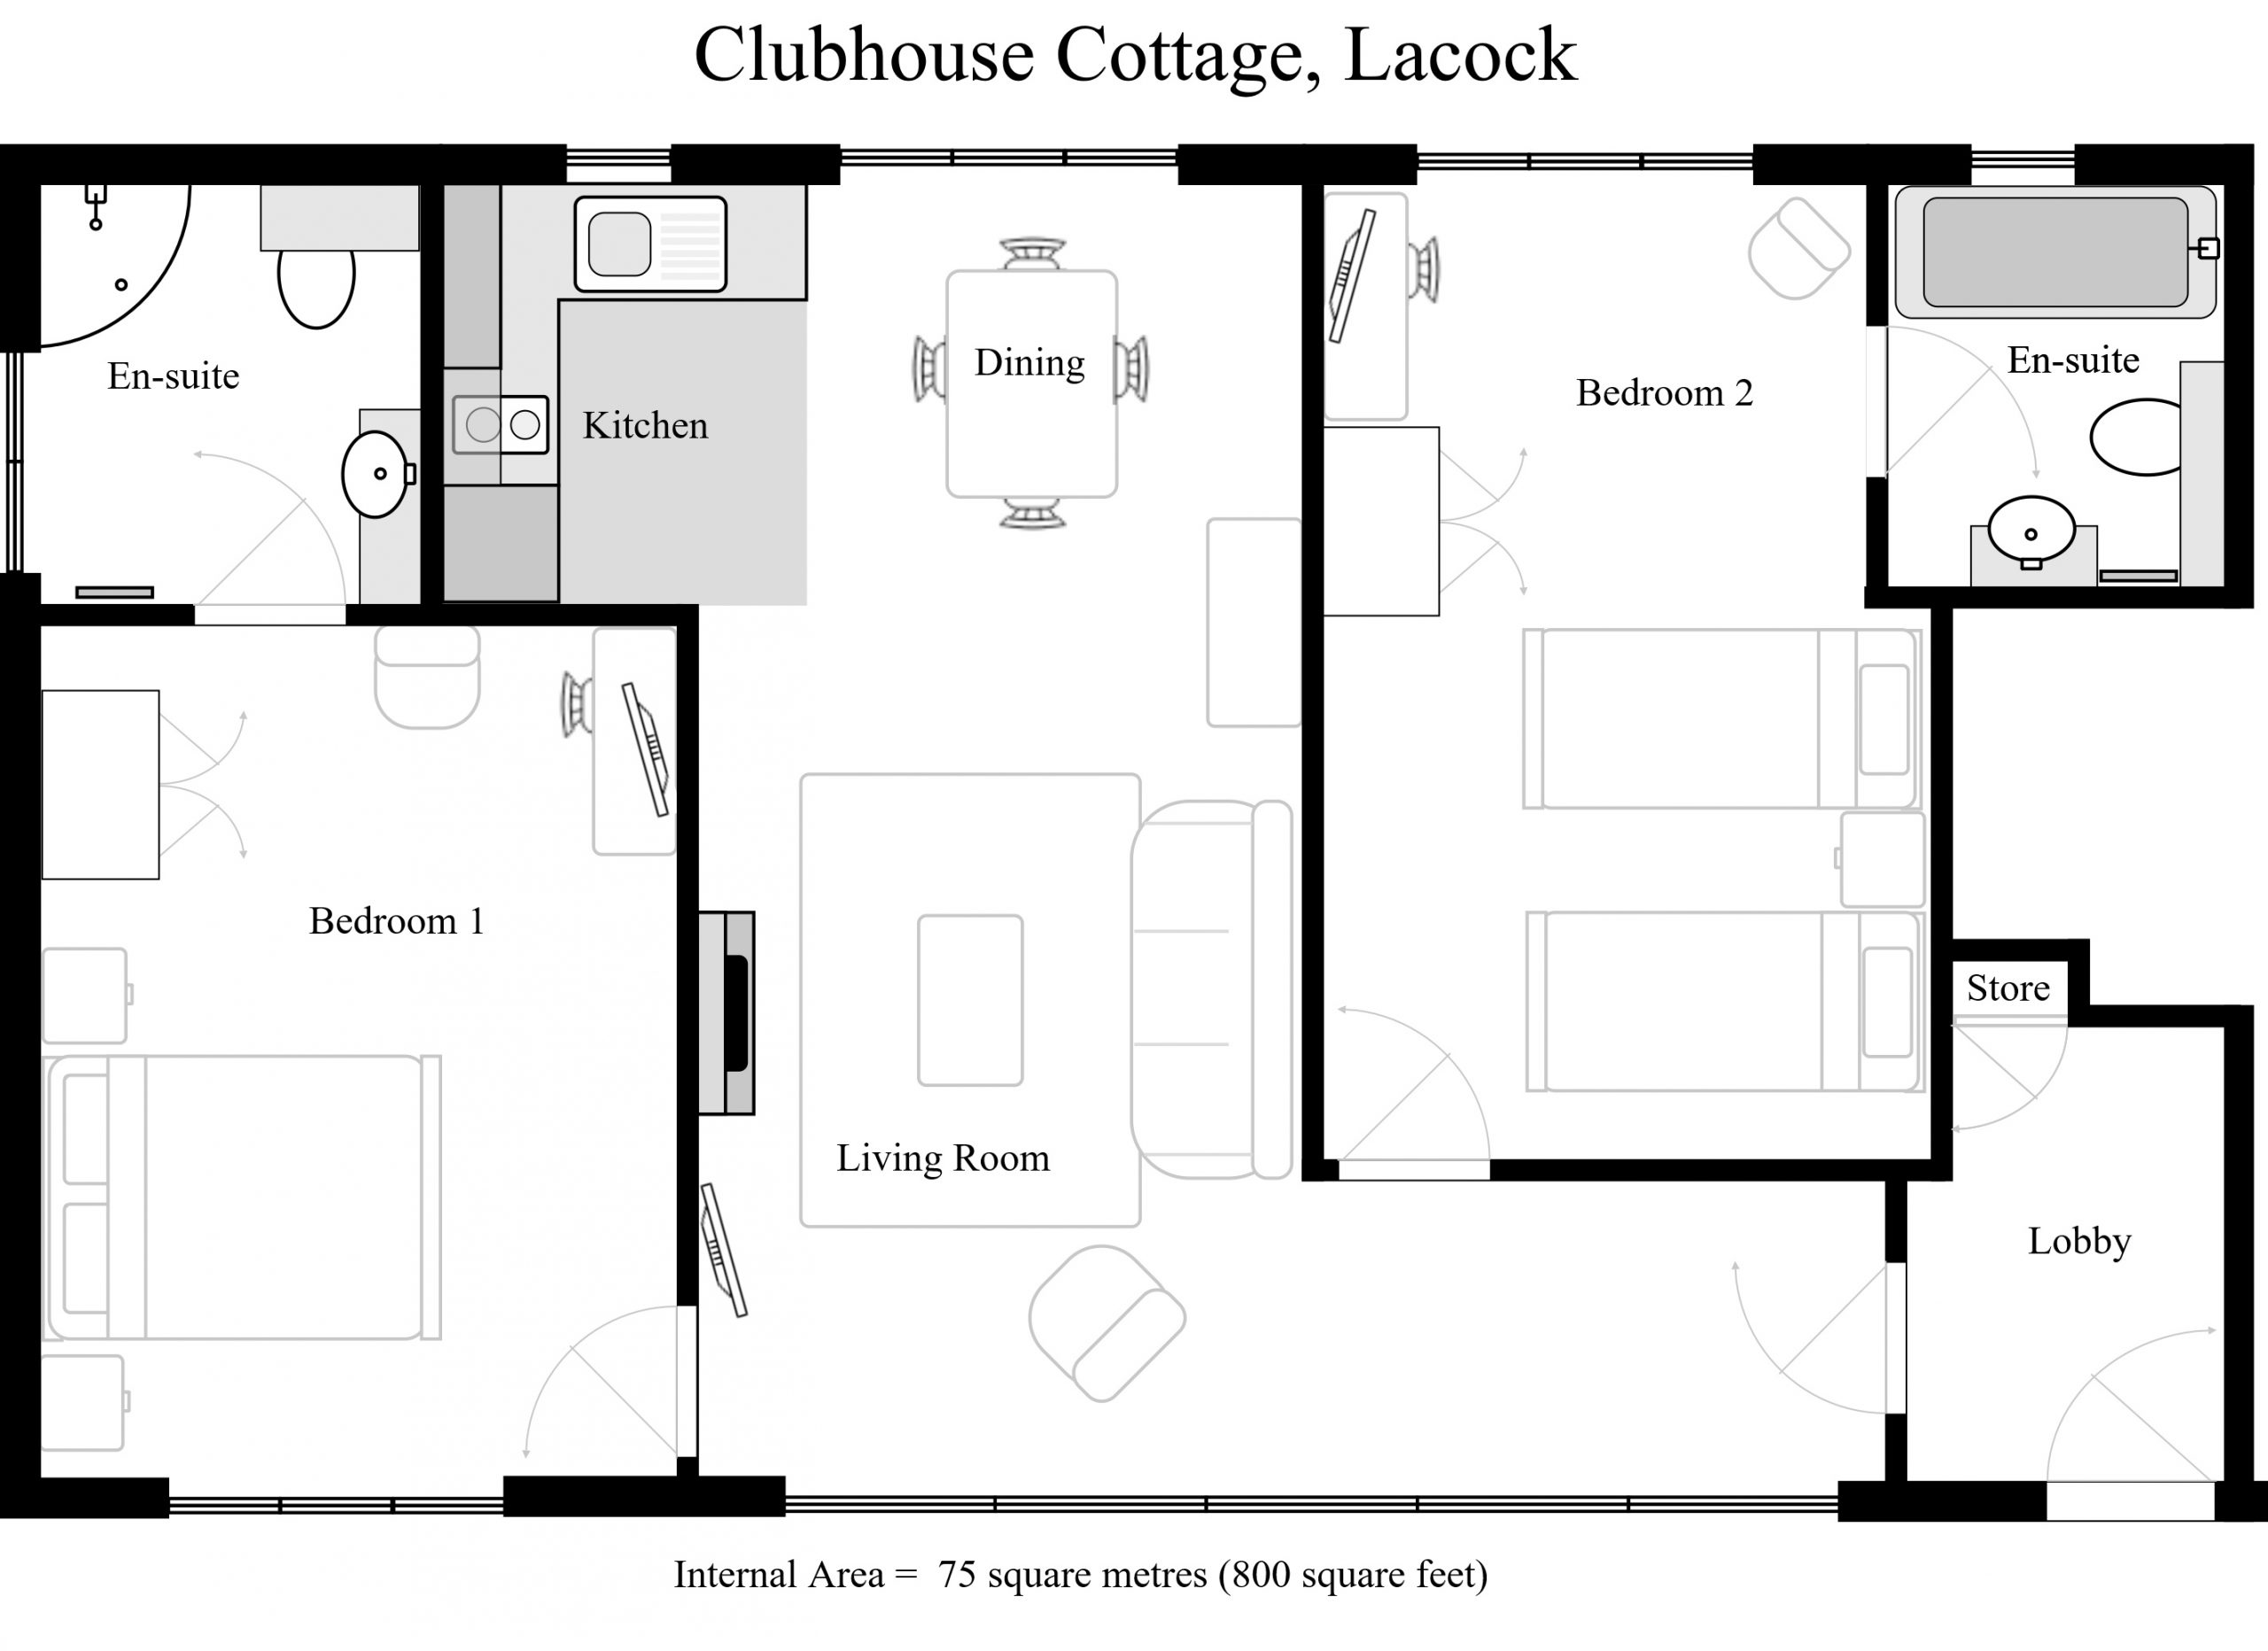 Clubhouse Cottage Layout